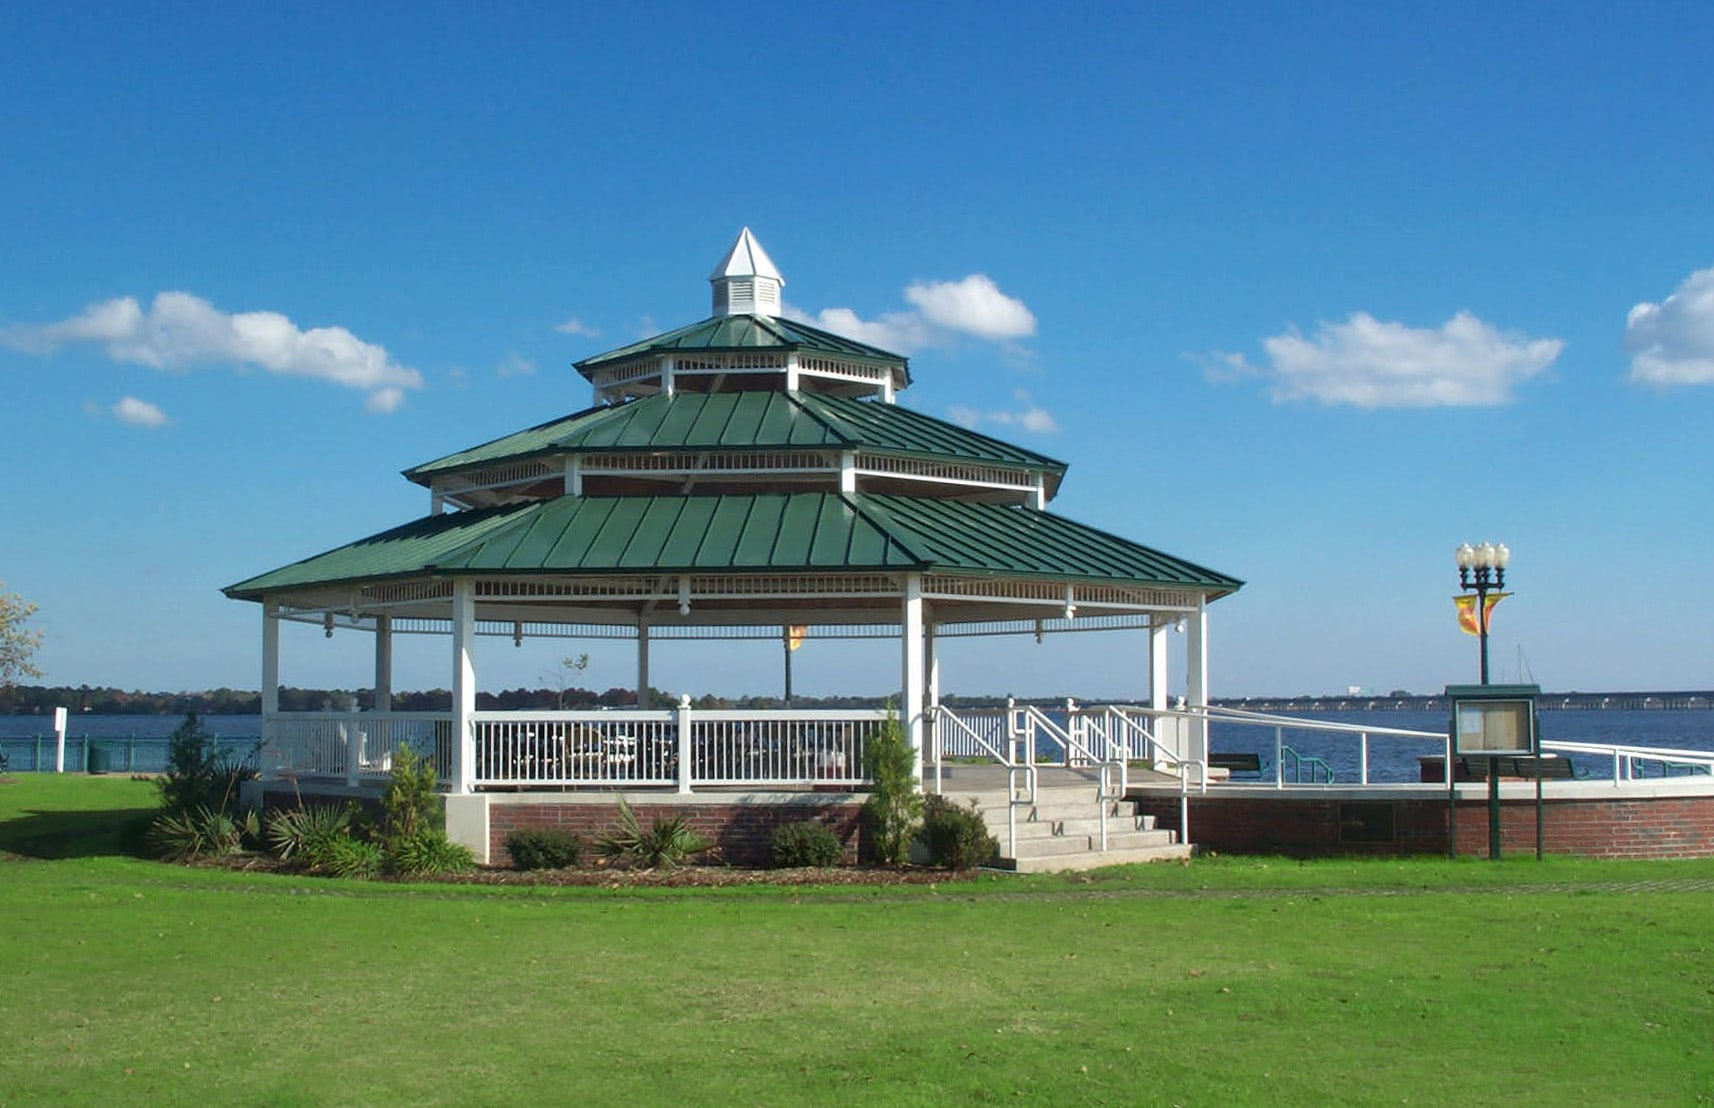 <h4>Poligon Park Shelters<br/>Union Point Park</h4><h5>E. Front Street<br/>New Bern, NC 28560</h5>